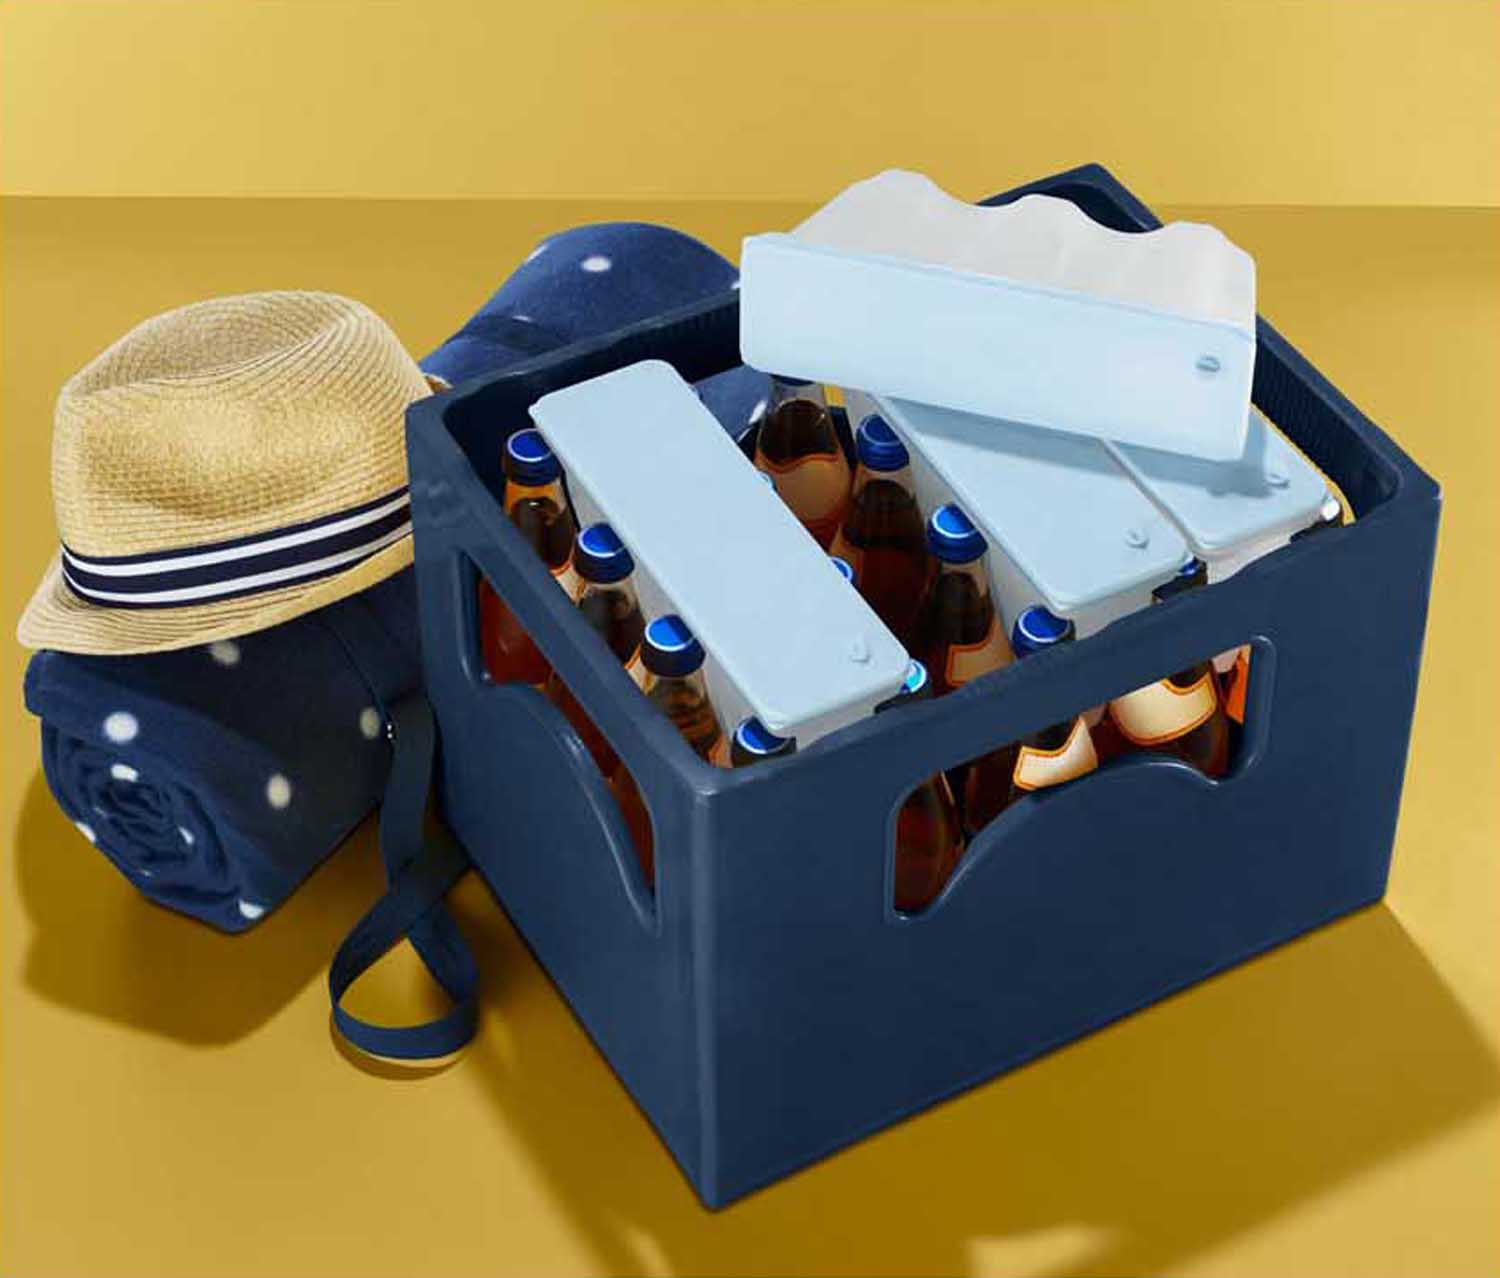 4 Drinks Crate Coolers, Light Blue